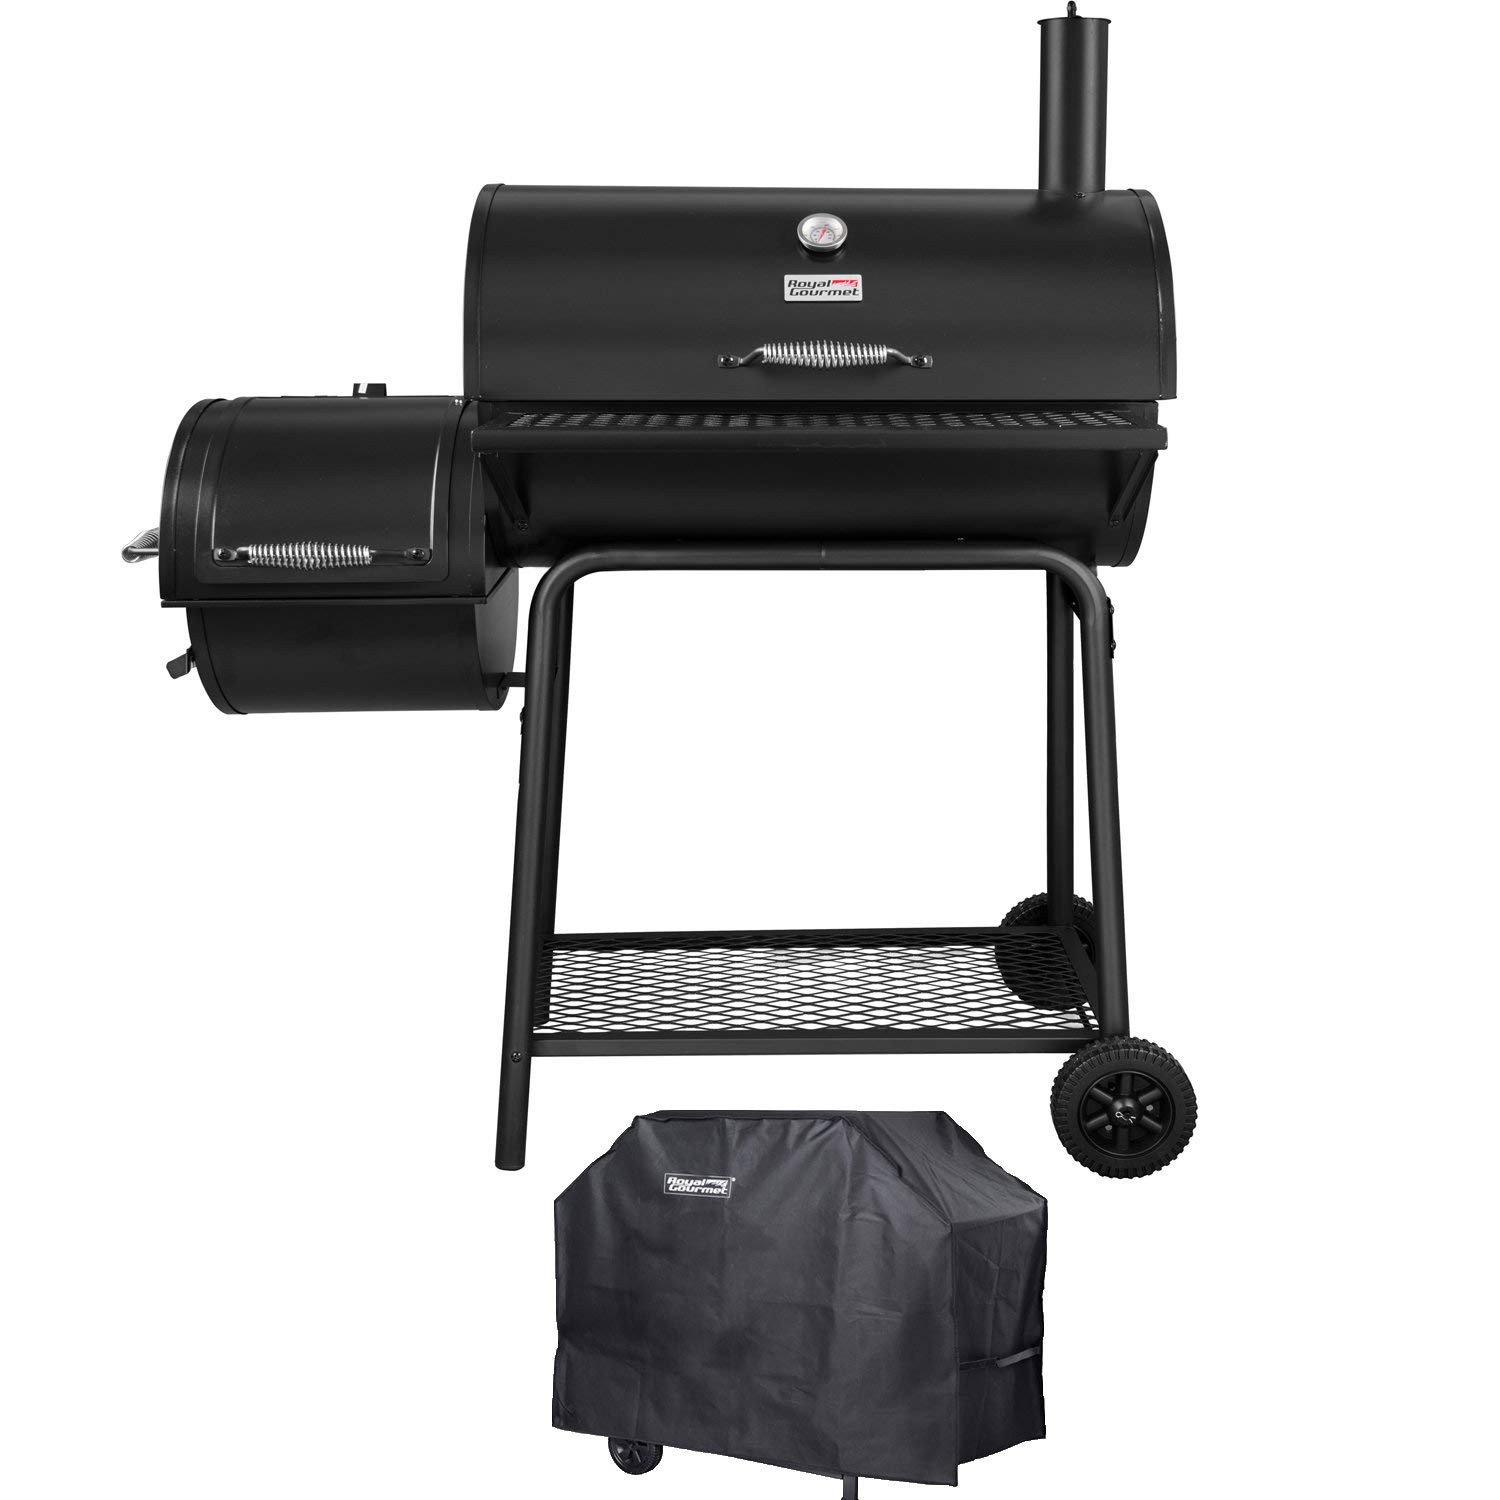 Royal Gourmet CC1830F-C Charcoal Grill Offset Smoker Review